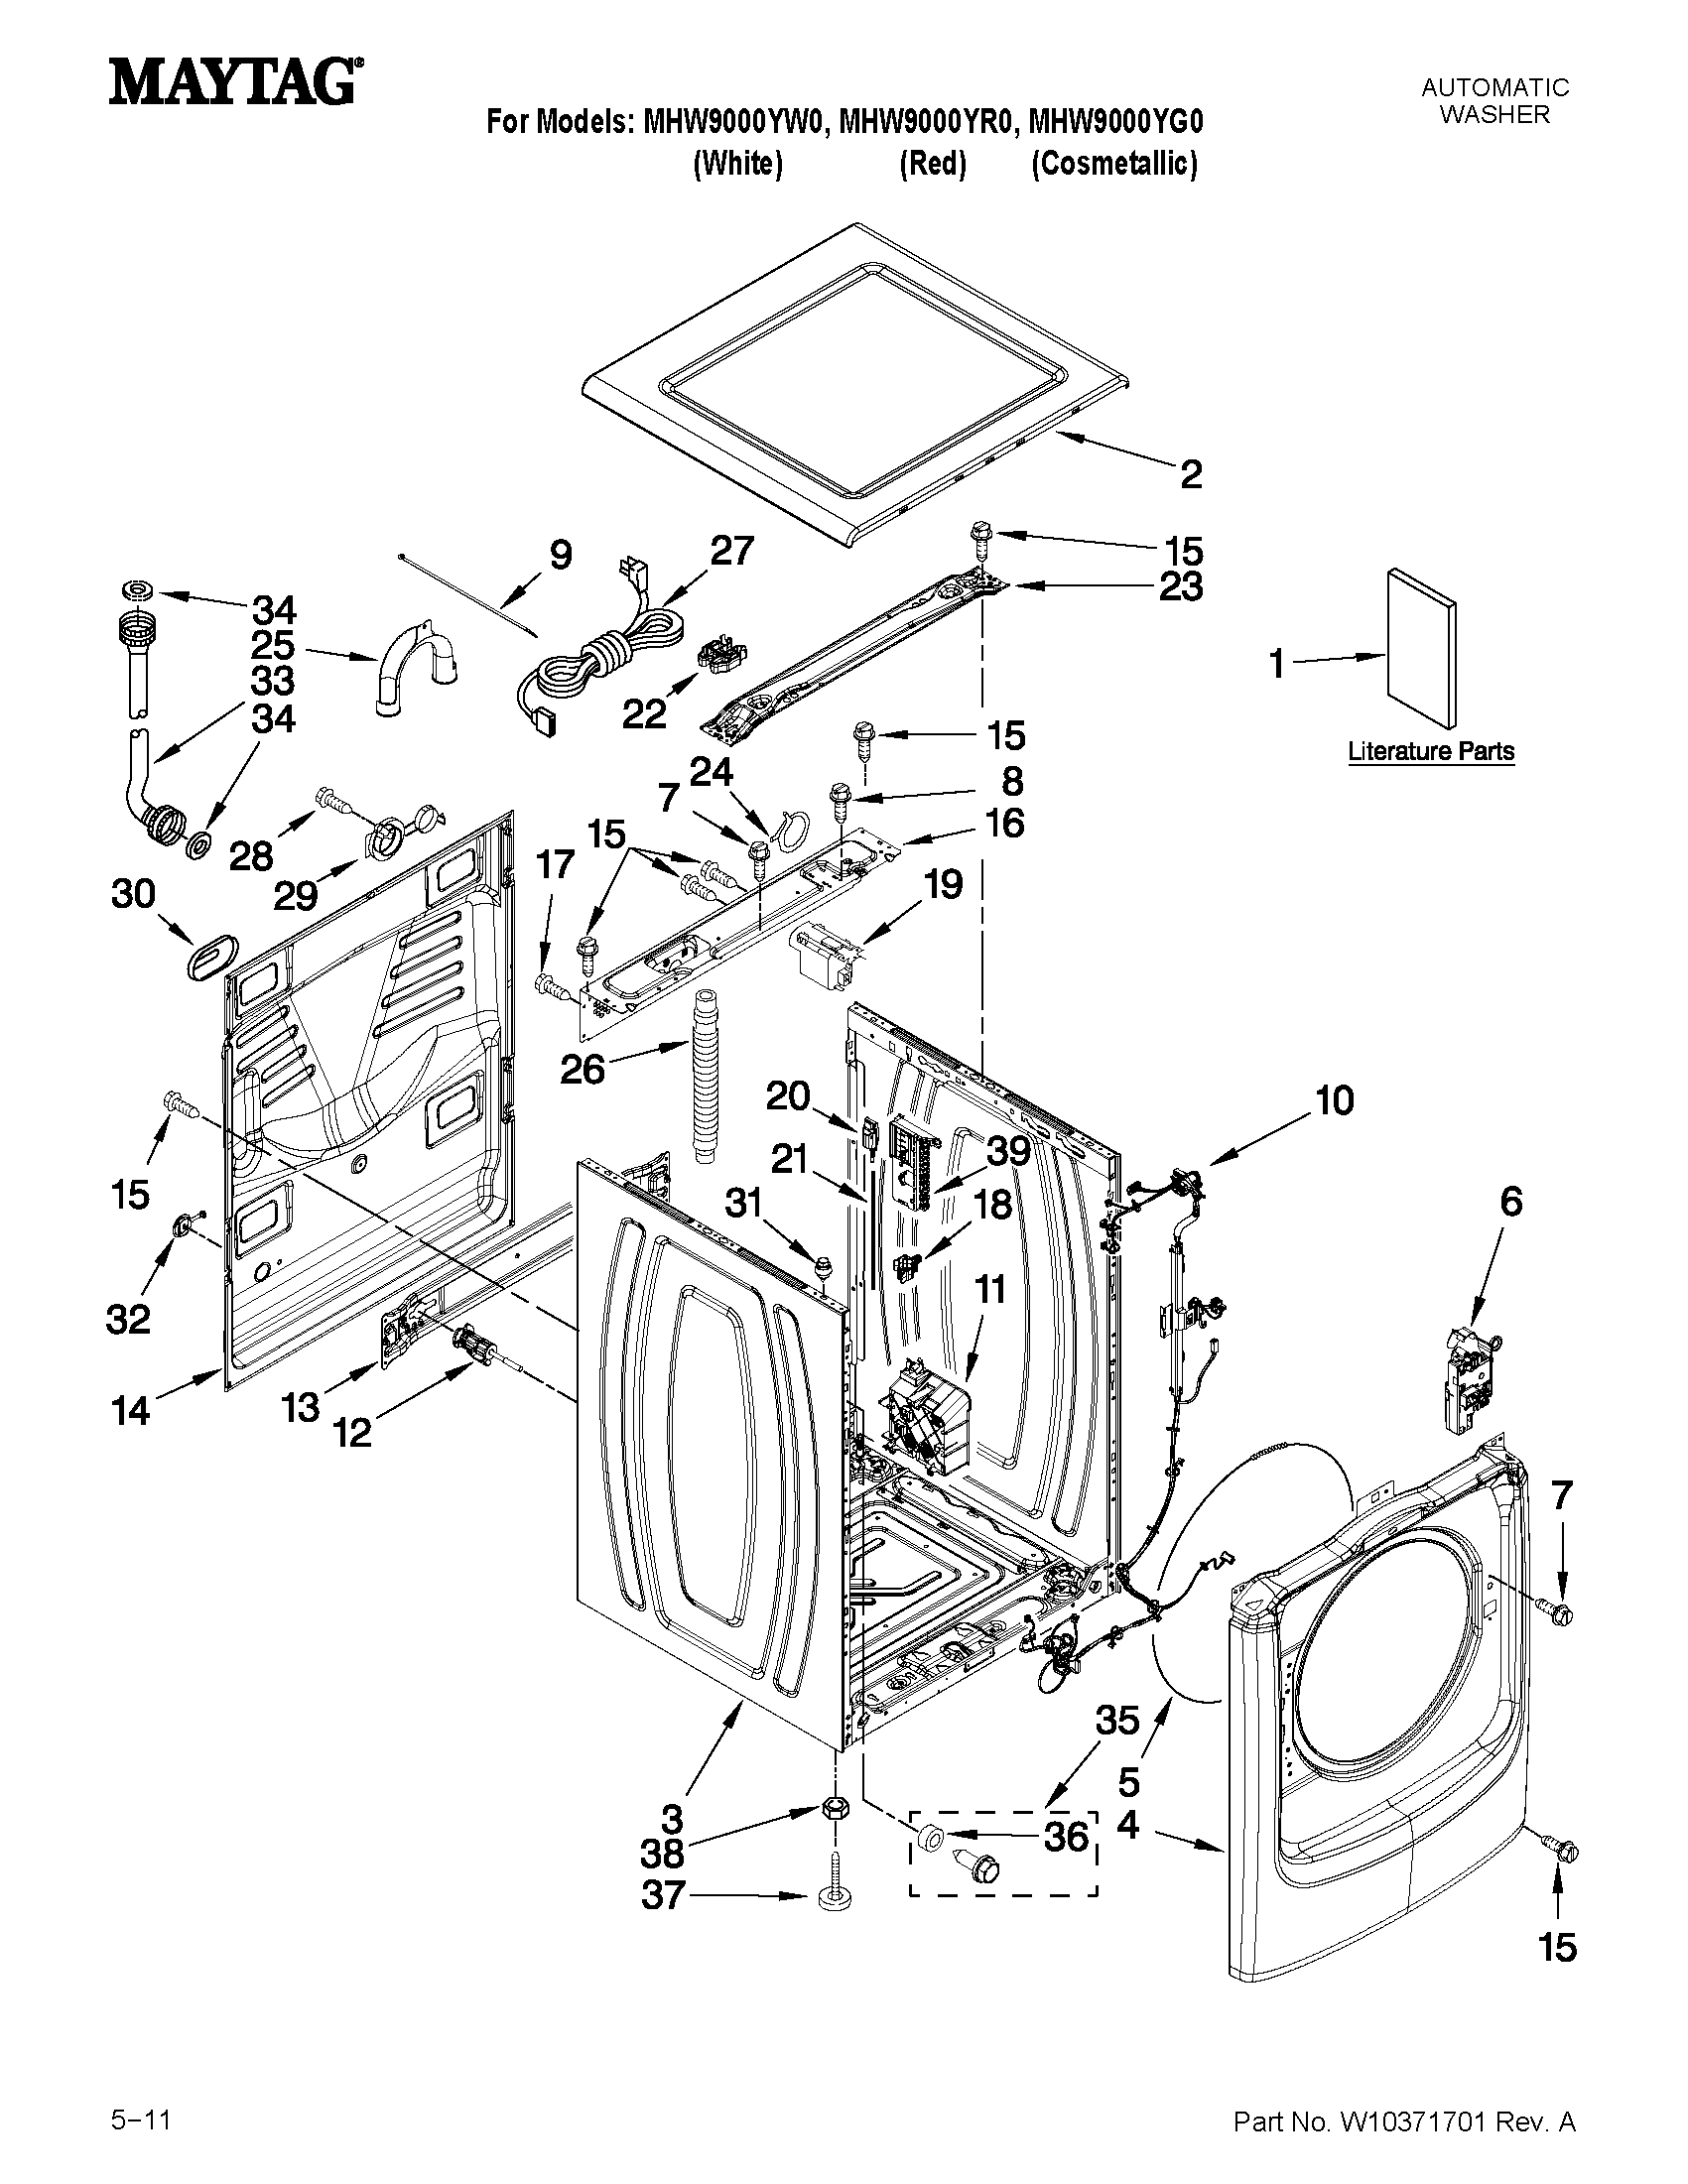 Maytag MHW9000YR0 top and cabinet parts diagram